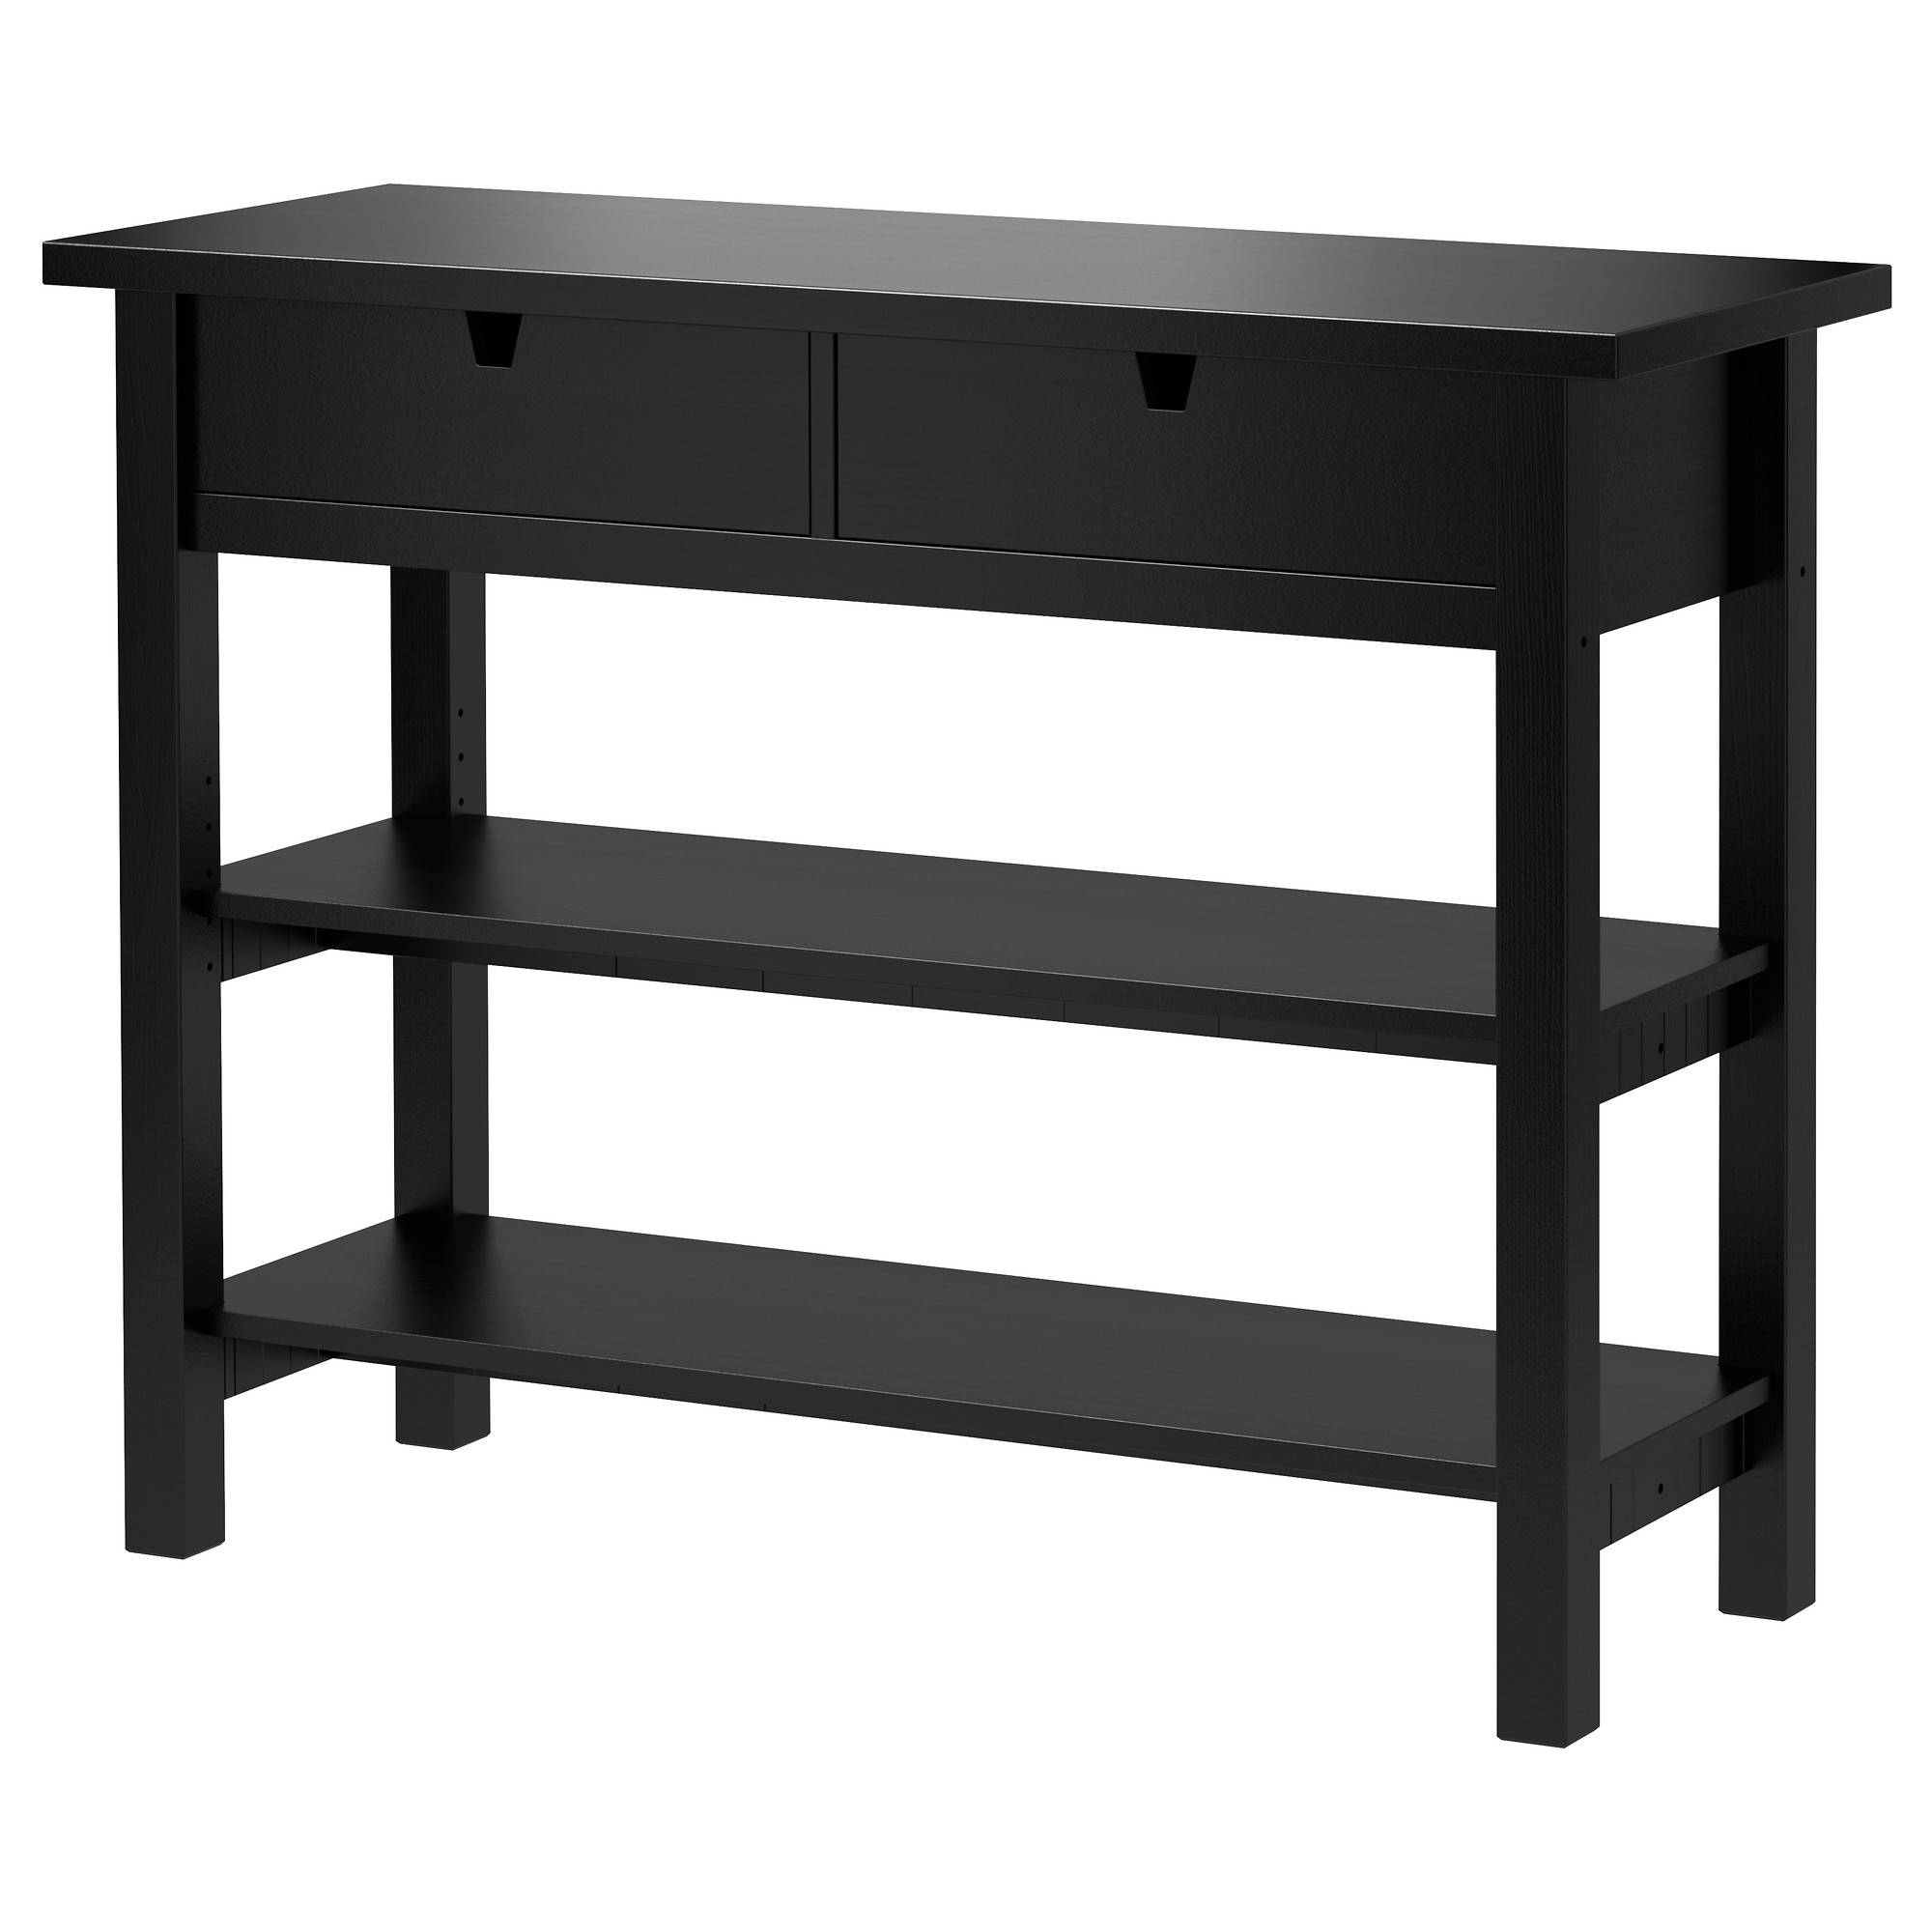 Buffet Tables & Sideboards - Ikea pertaining to Small Black Sideboards (Image 4 of 30)